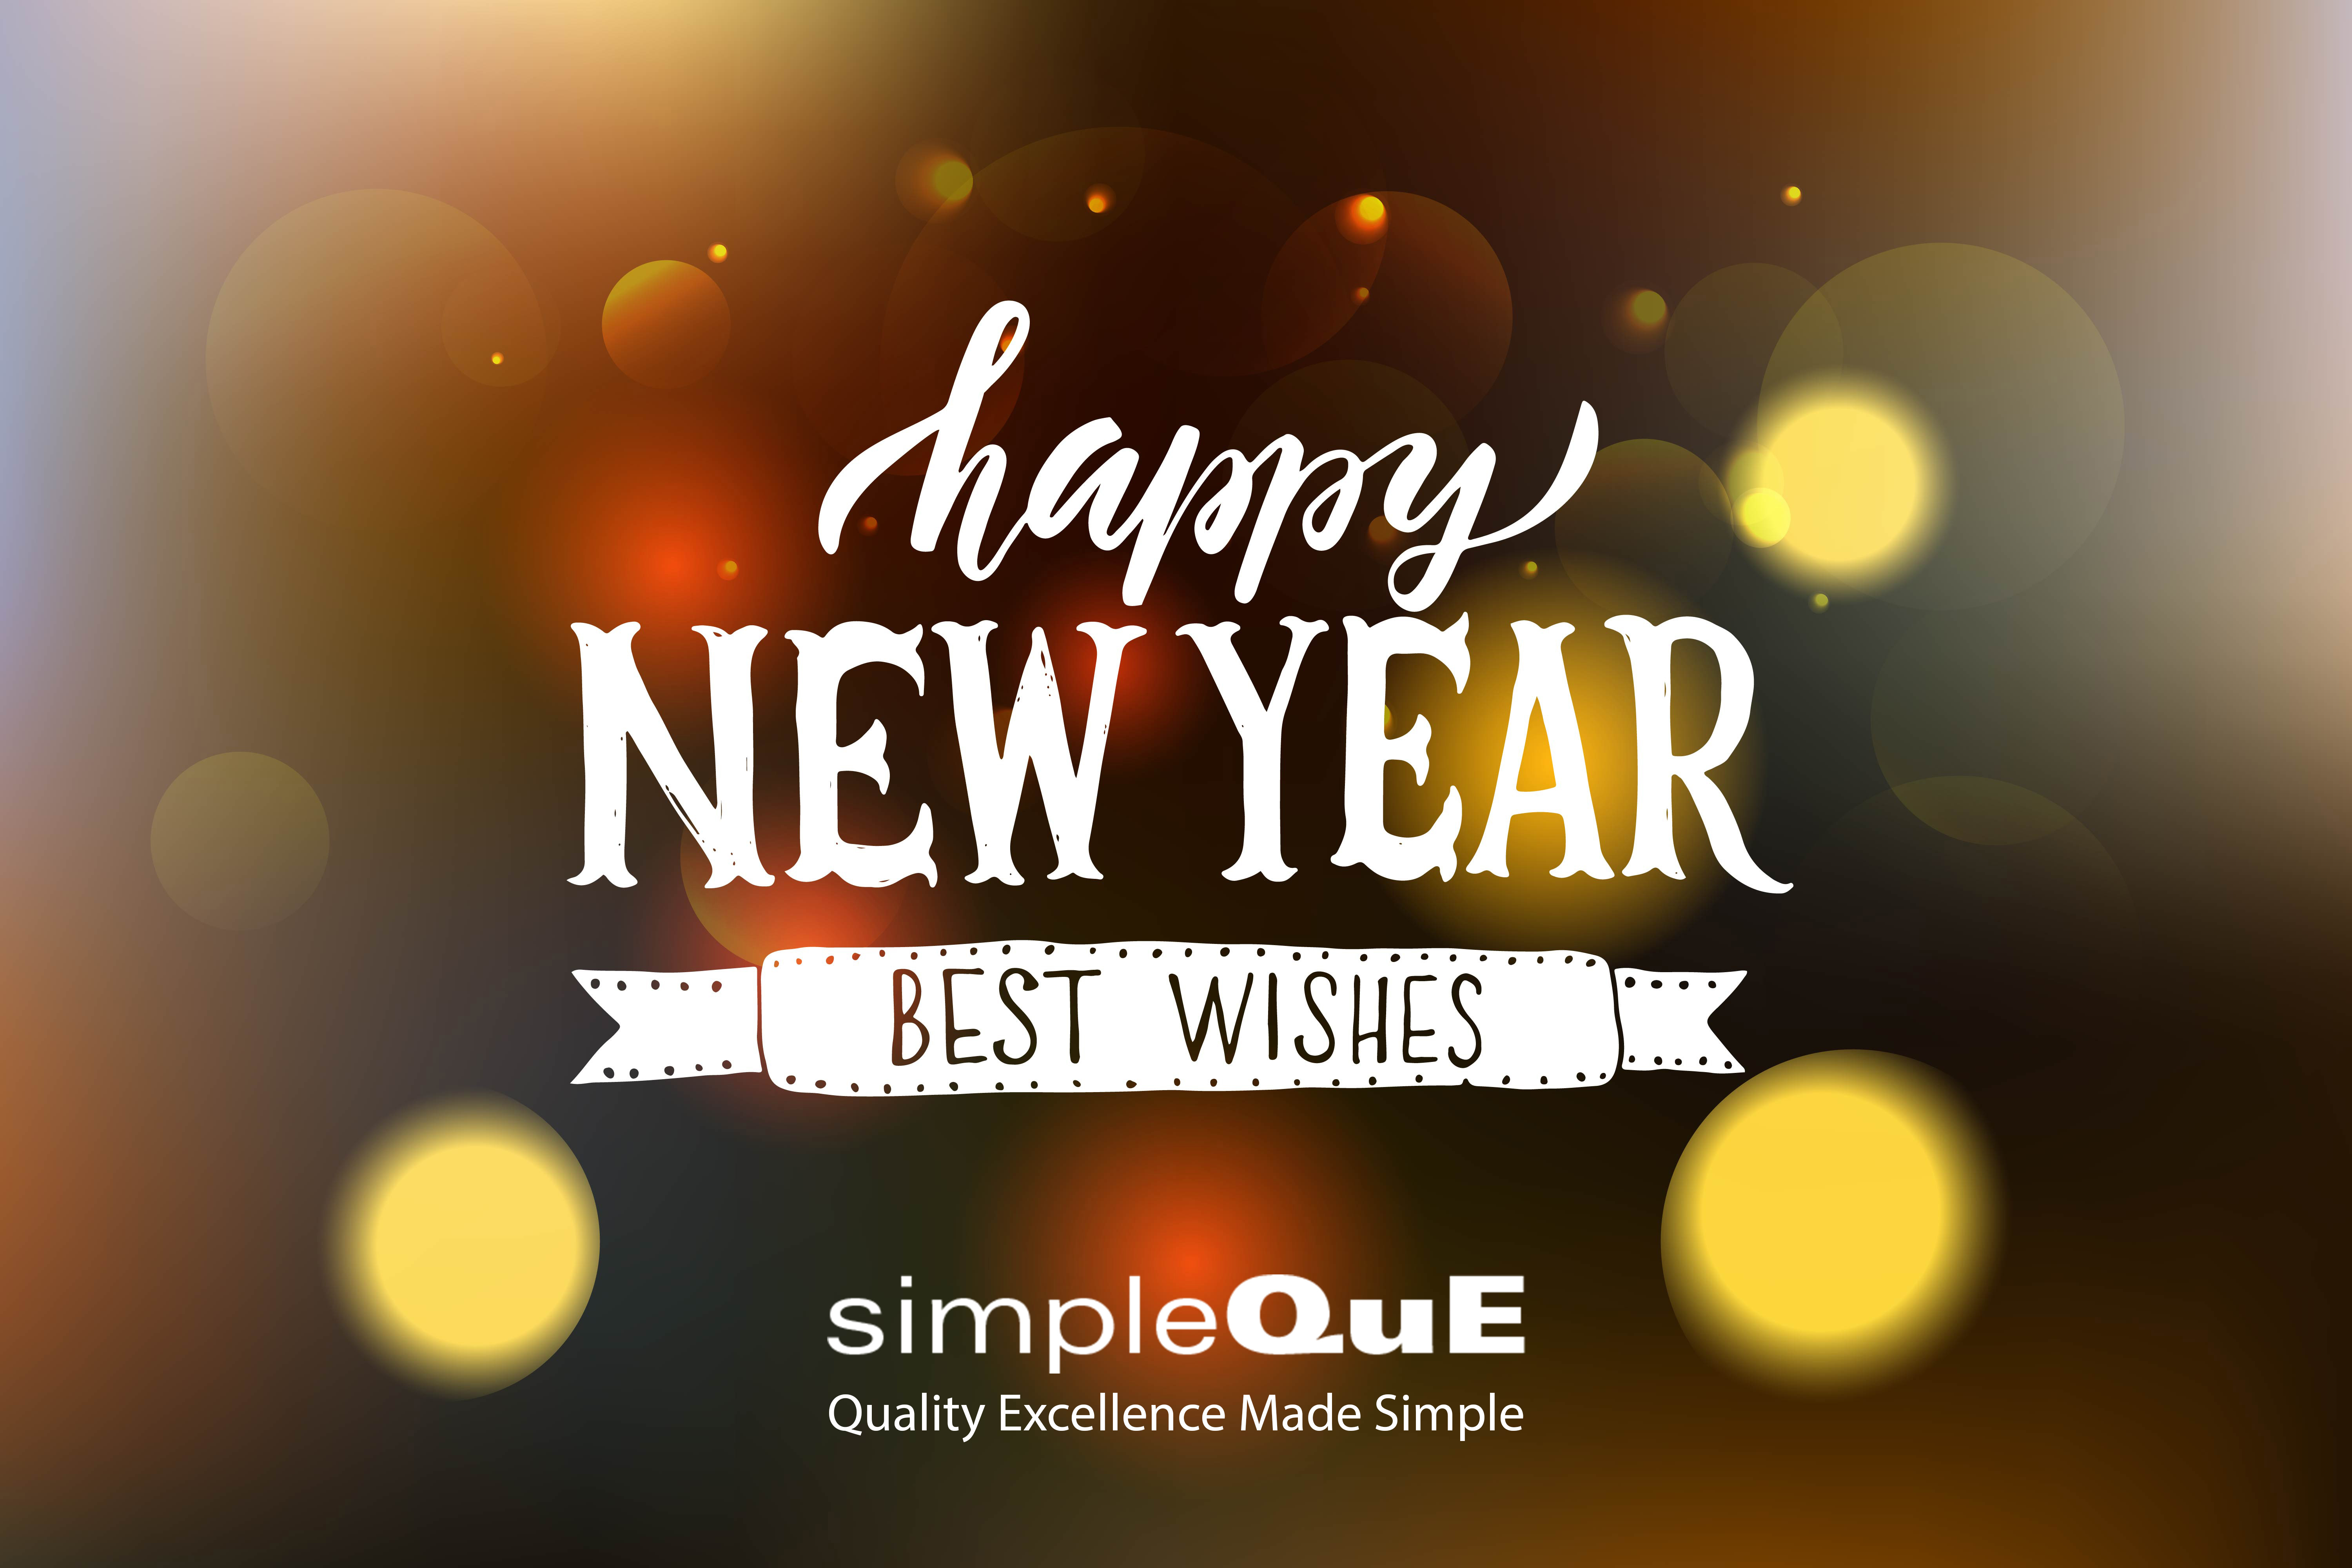 Happy New Year from simpleQuE